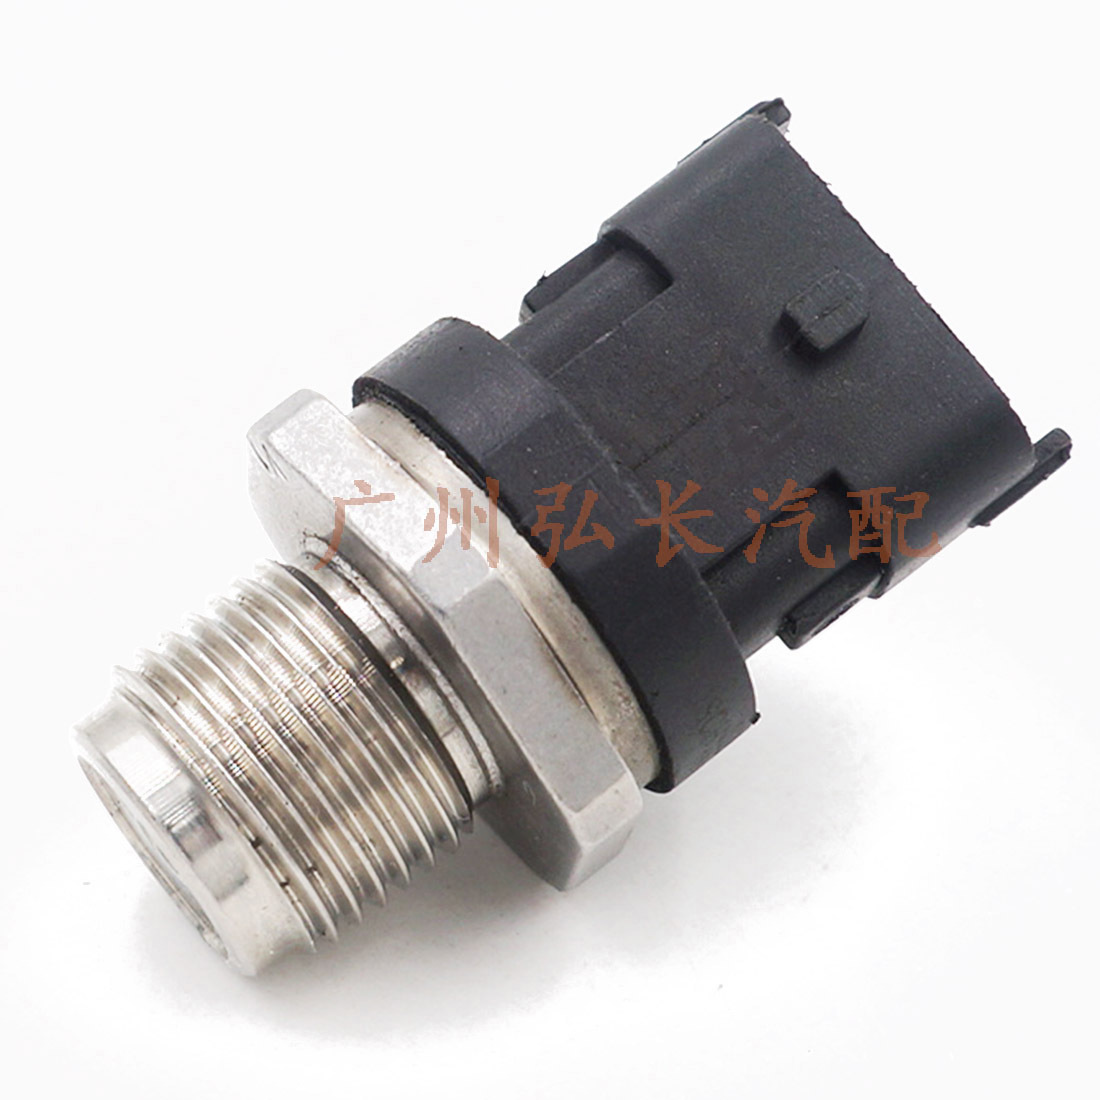 Applicable Bosch Fuel Rail Pressure Sensor High Pressure Common Rail Sensor 0281002915